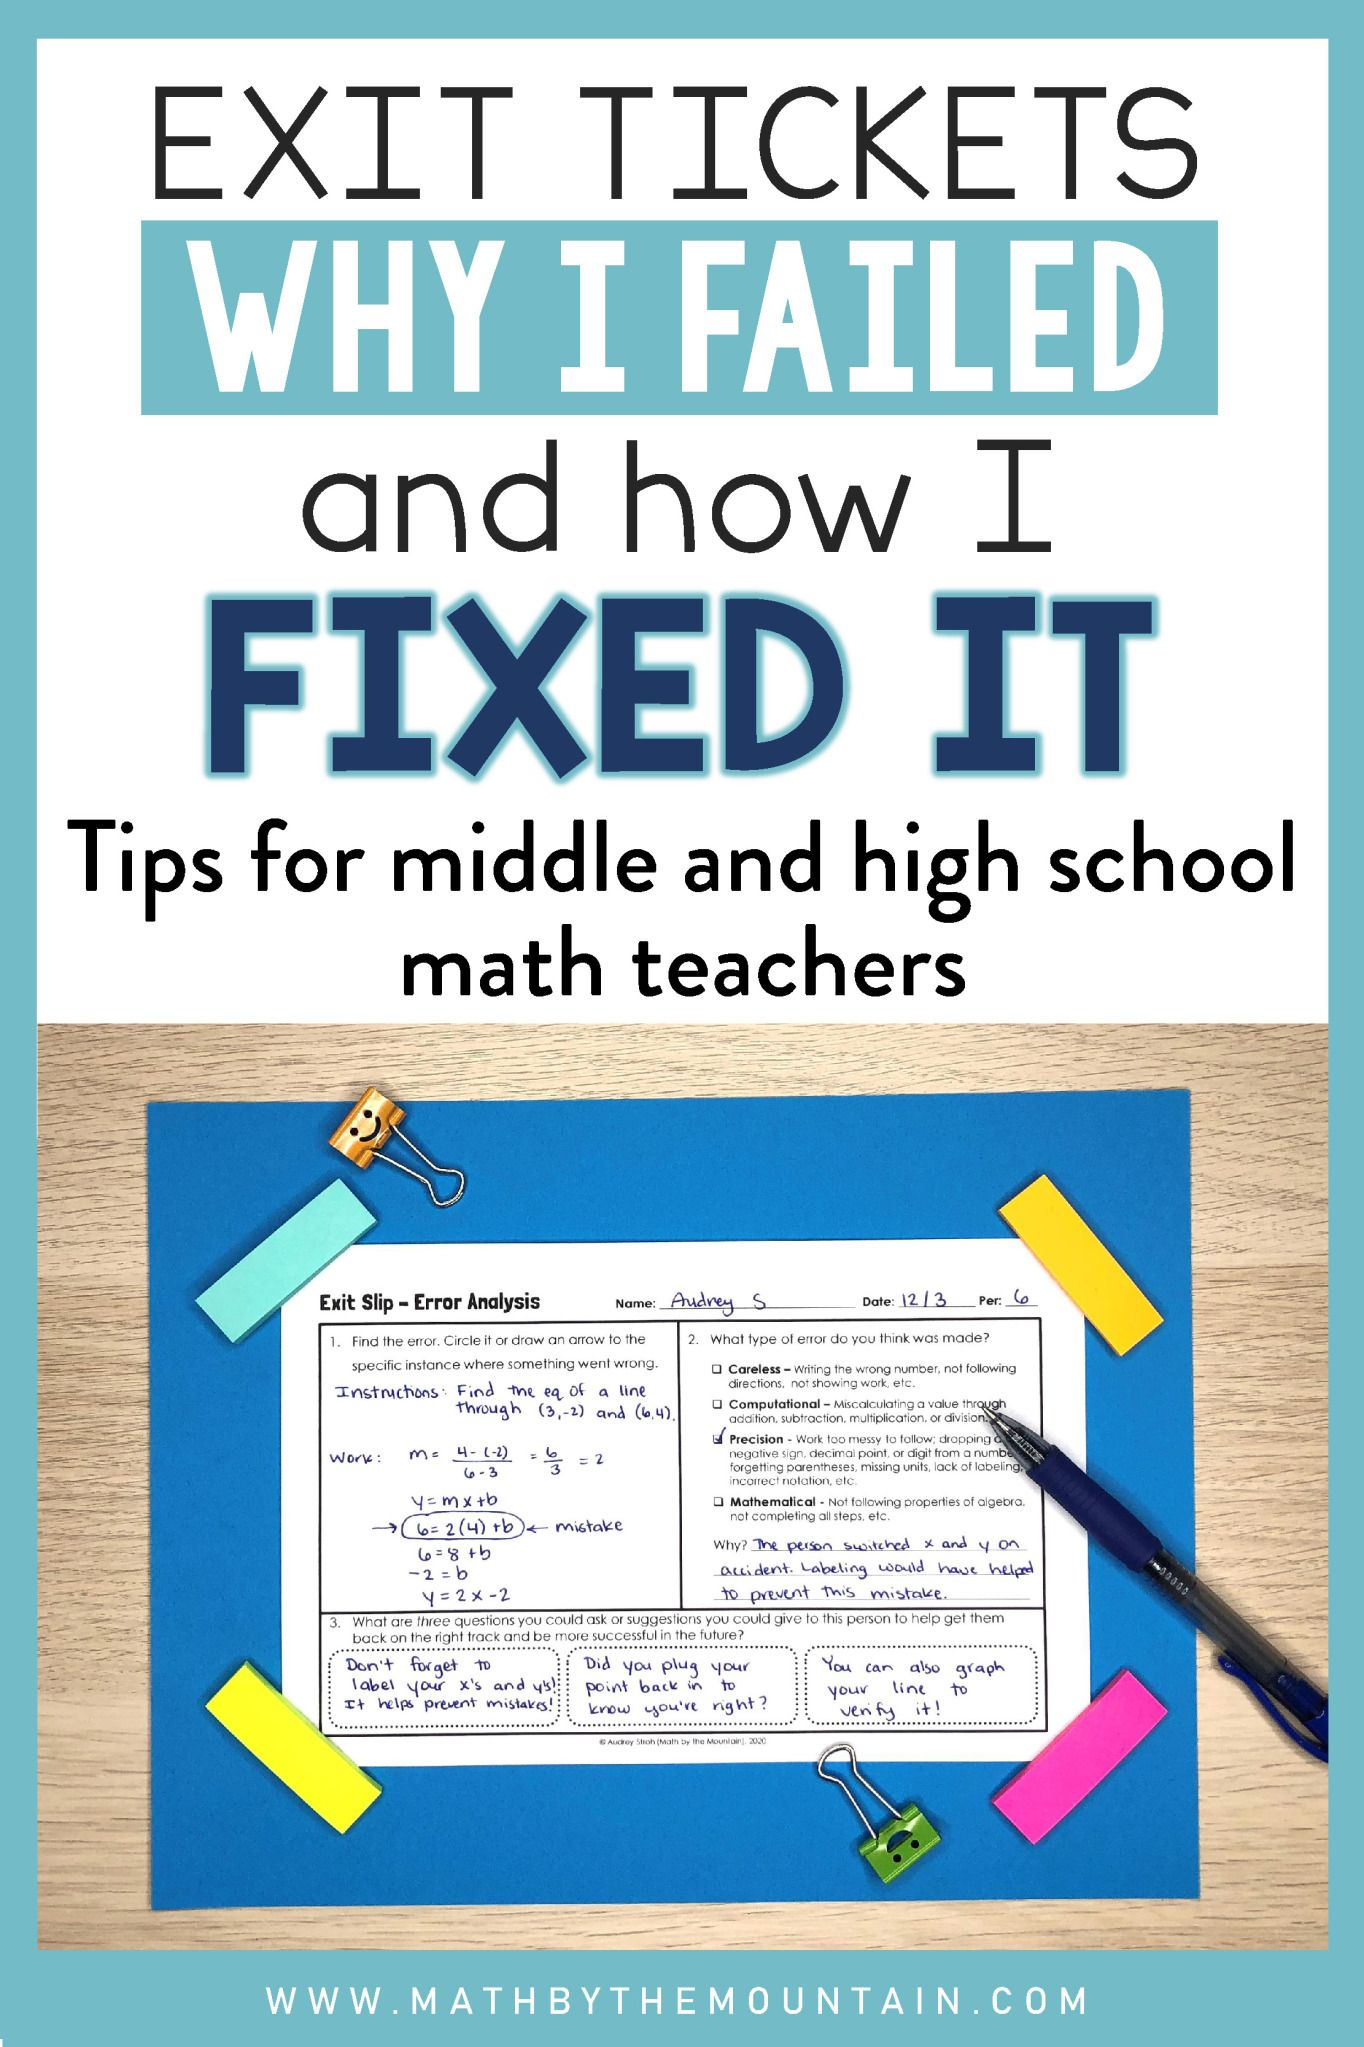 Implementing Exit Tickets In Middle High School Math Why I Failed Before How I Fixed It Mat High School Math Math Exit Tickets High School Math Teacher [ 2047 x 1364 Pixel ]